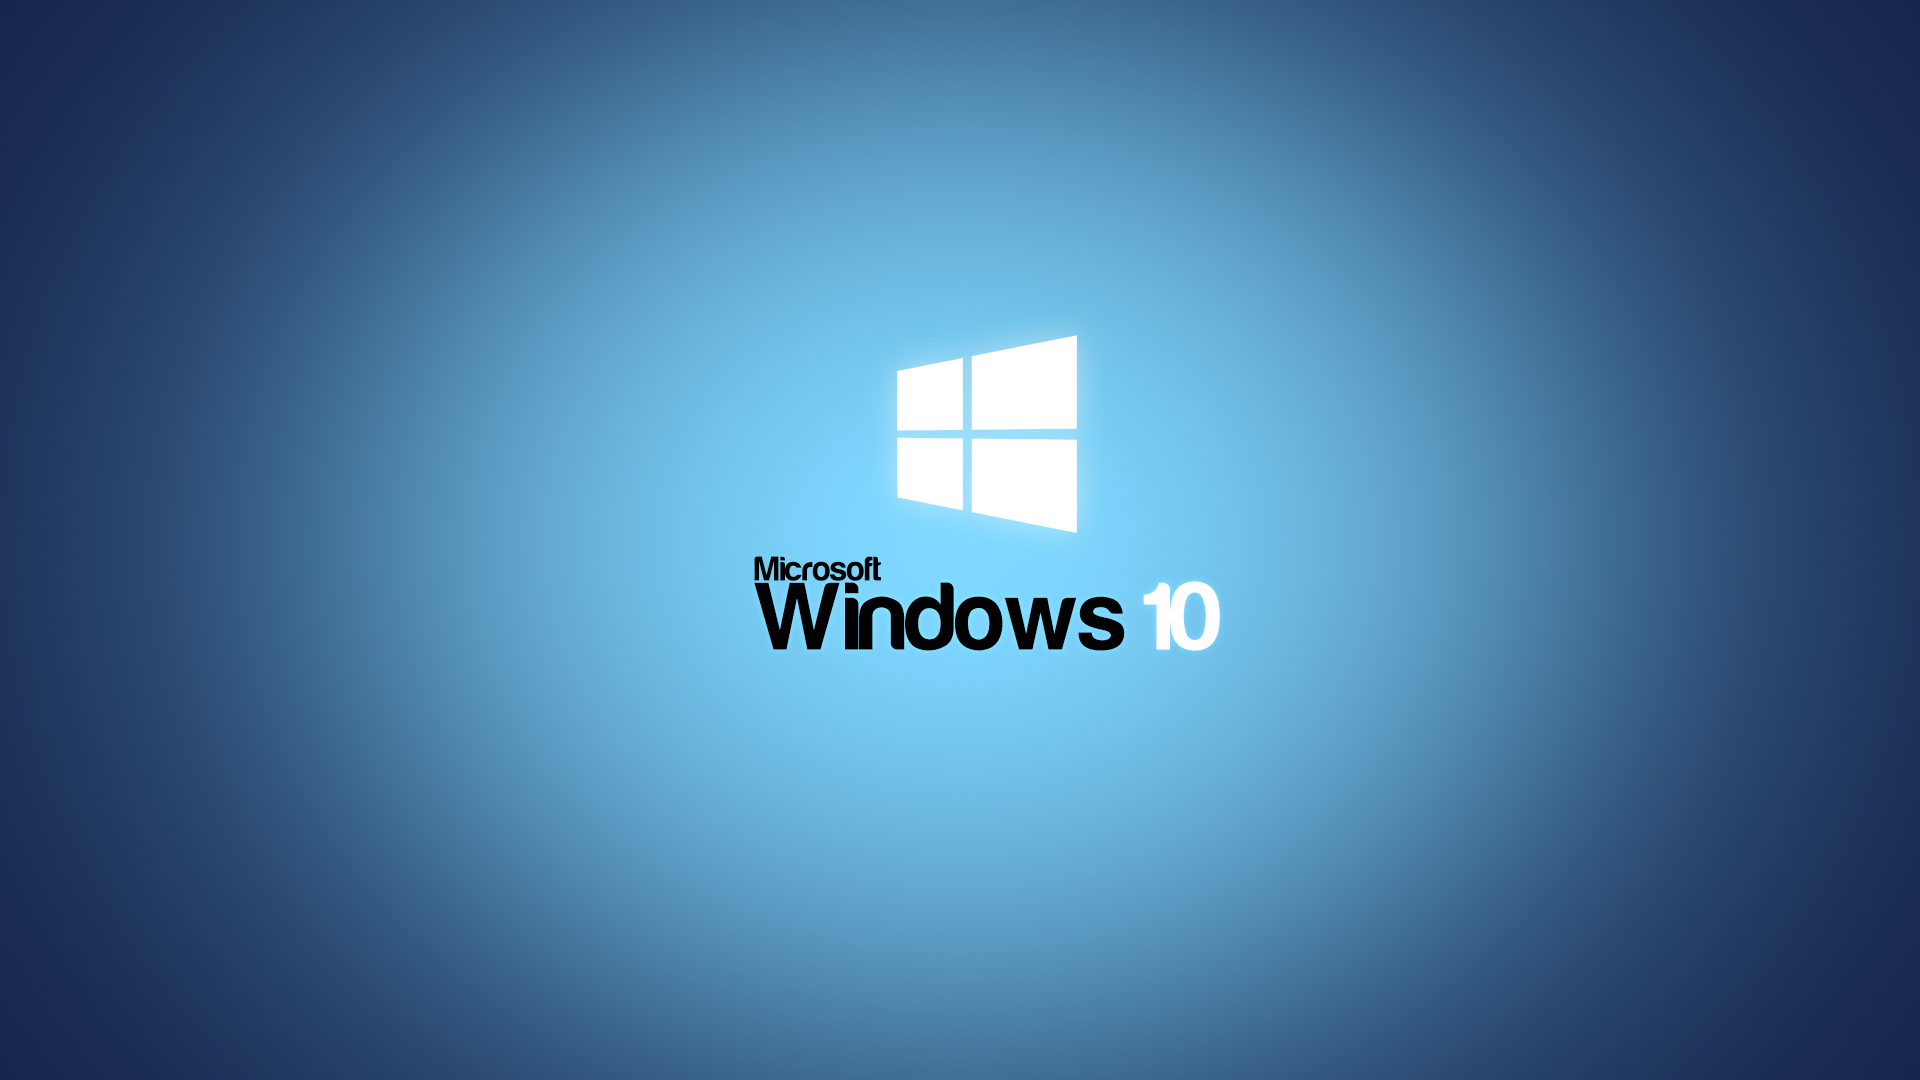 Wallpaper 3d Hd Windows 8